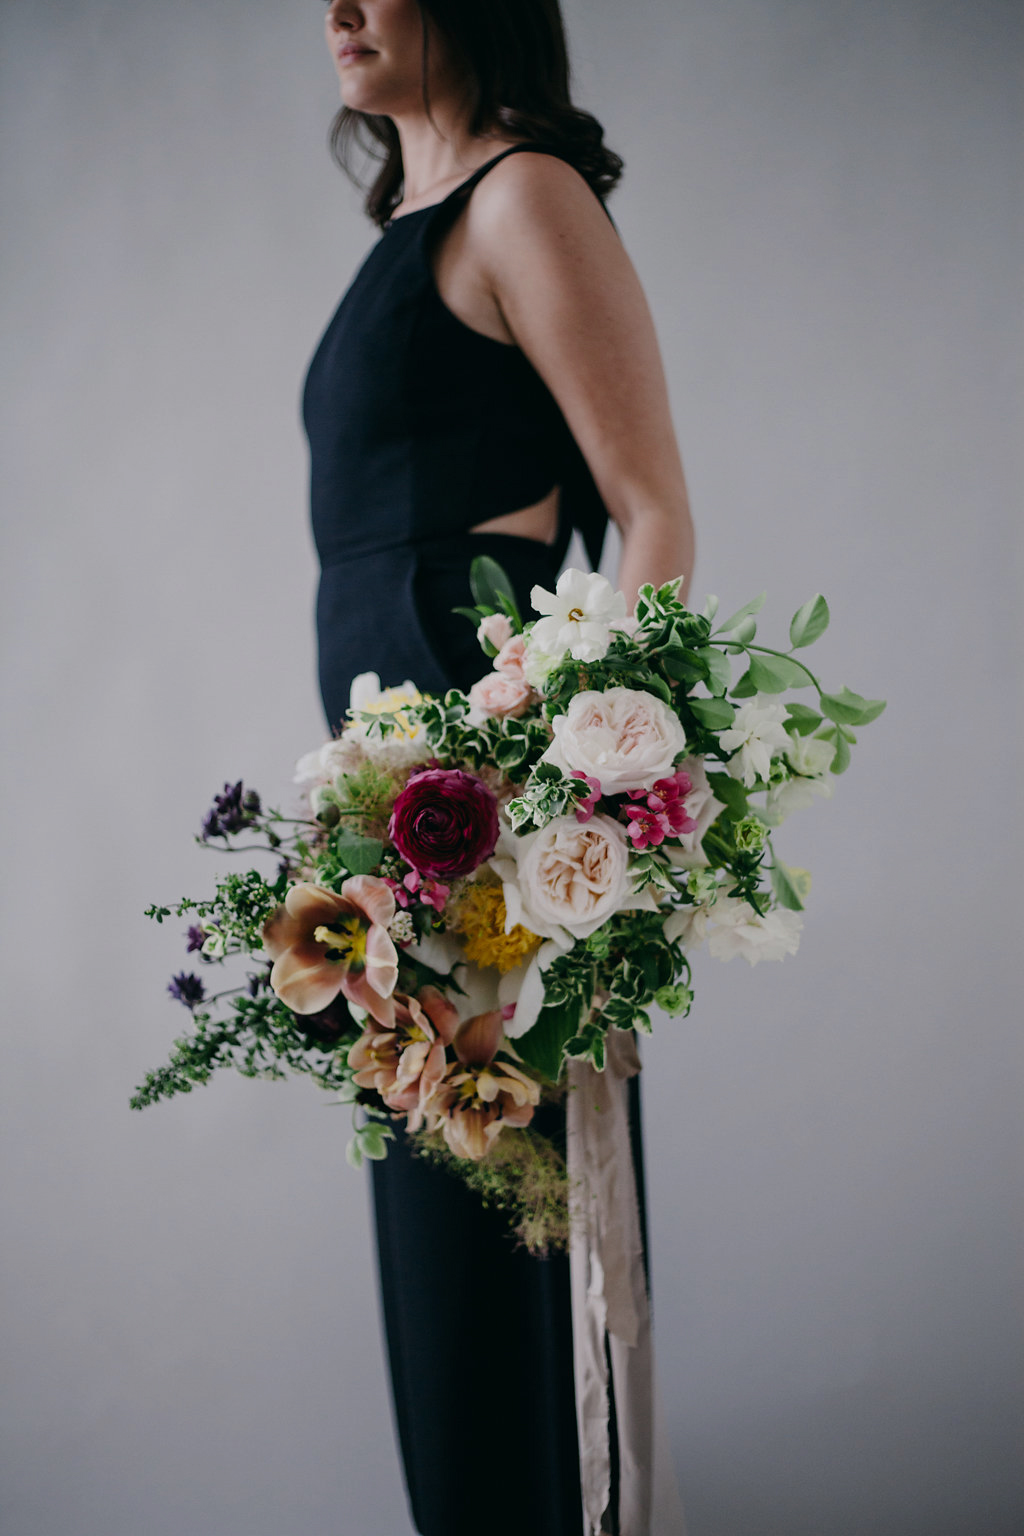 Bouquets & Personal Flowers - See more...